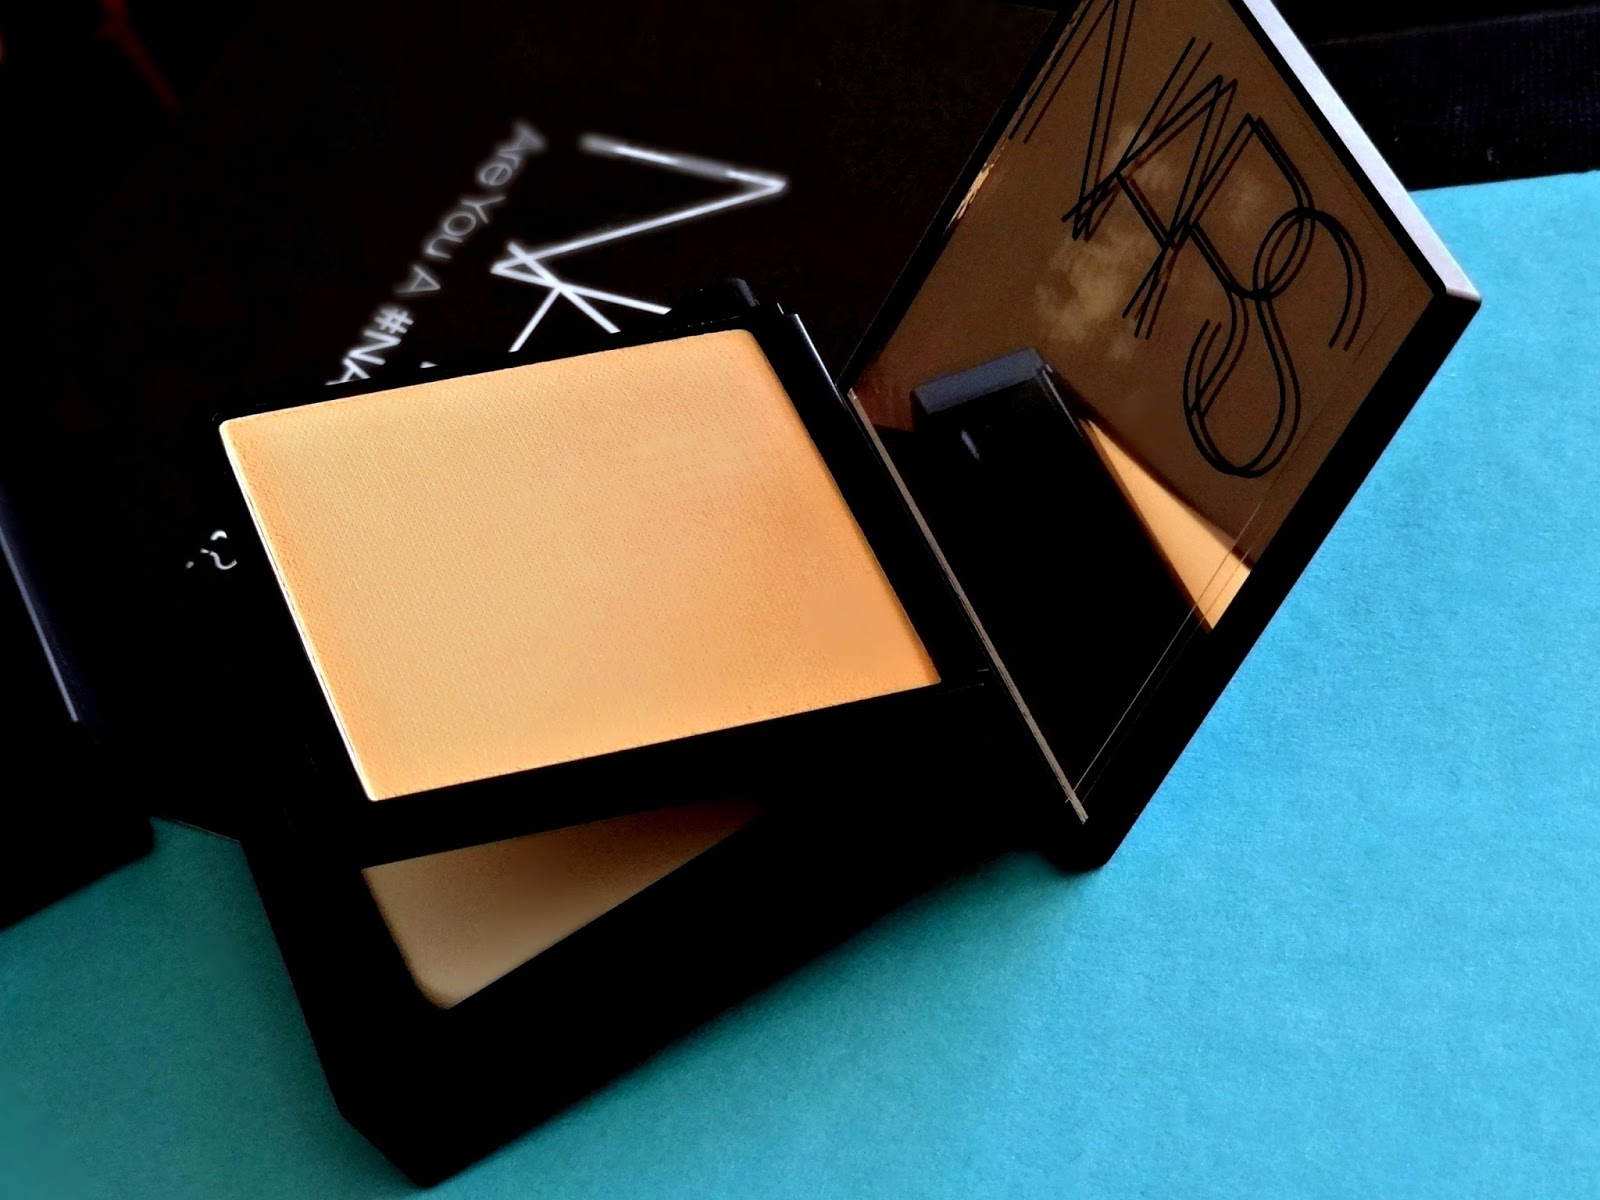 NARS All Day Luminous Powder Foundation Barcelona and Stromboli  Review, Photos & Swatches